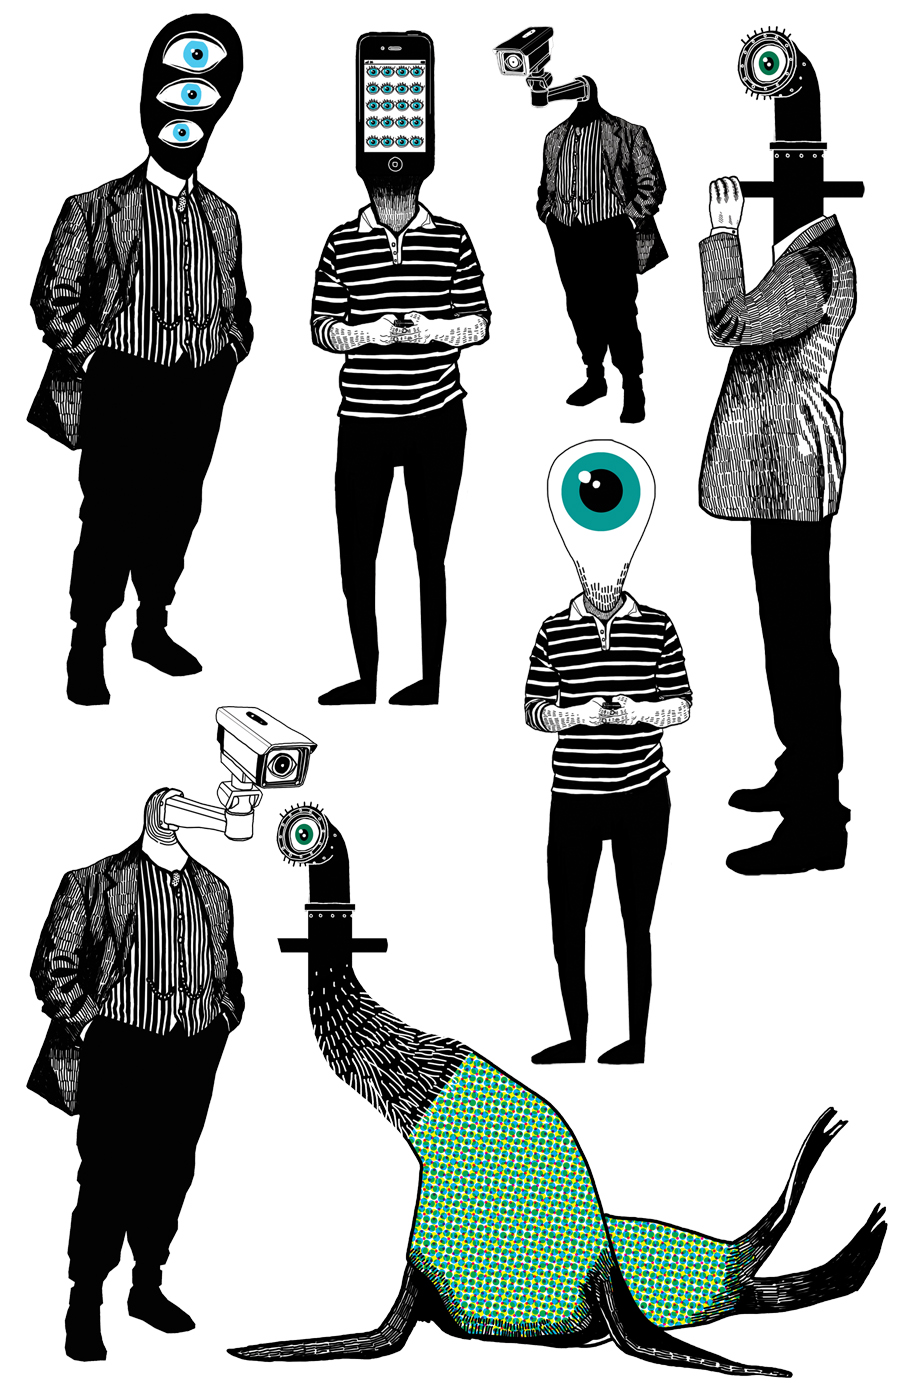 Eye Spy (drawings) by Rebecca Hendin